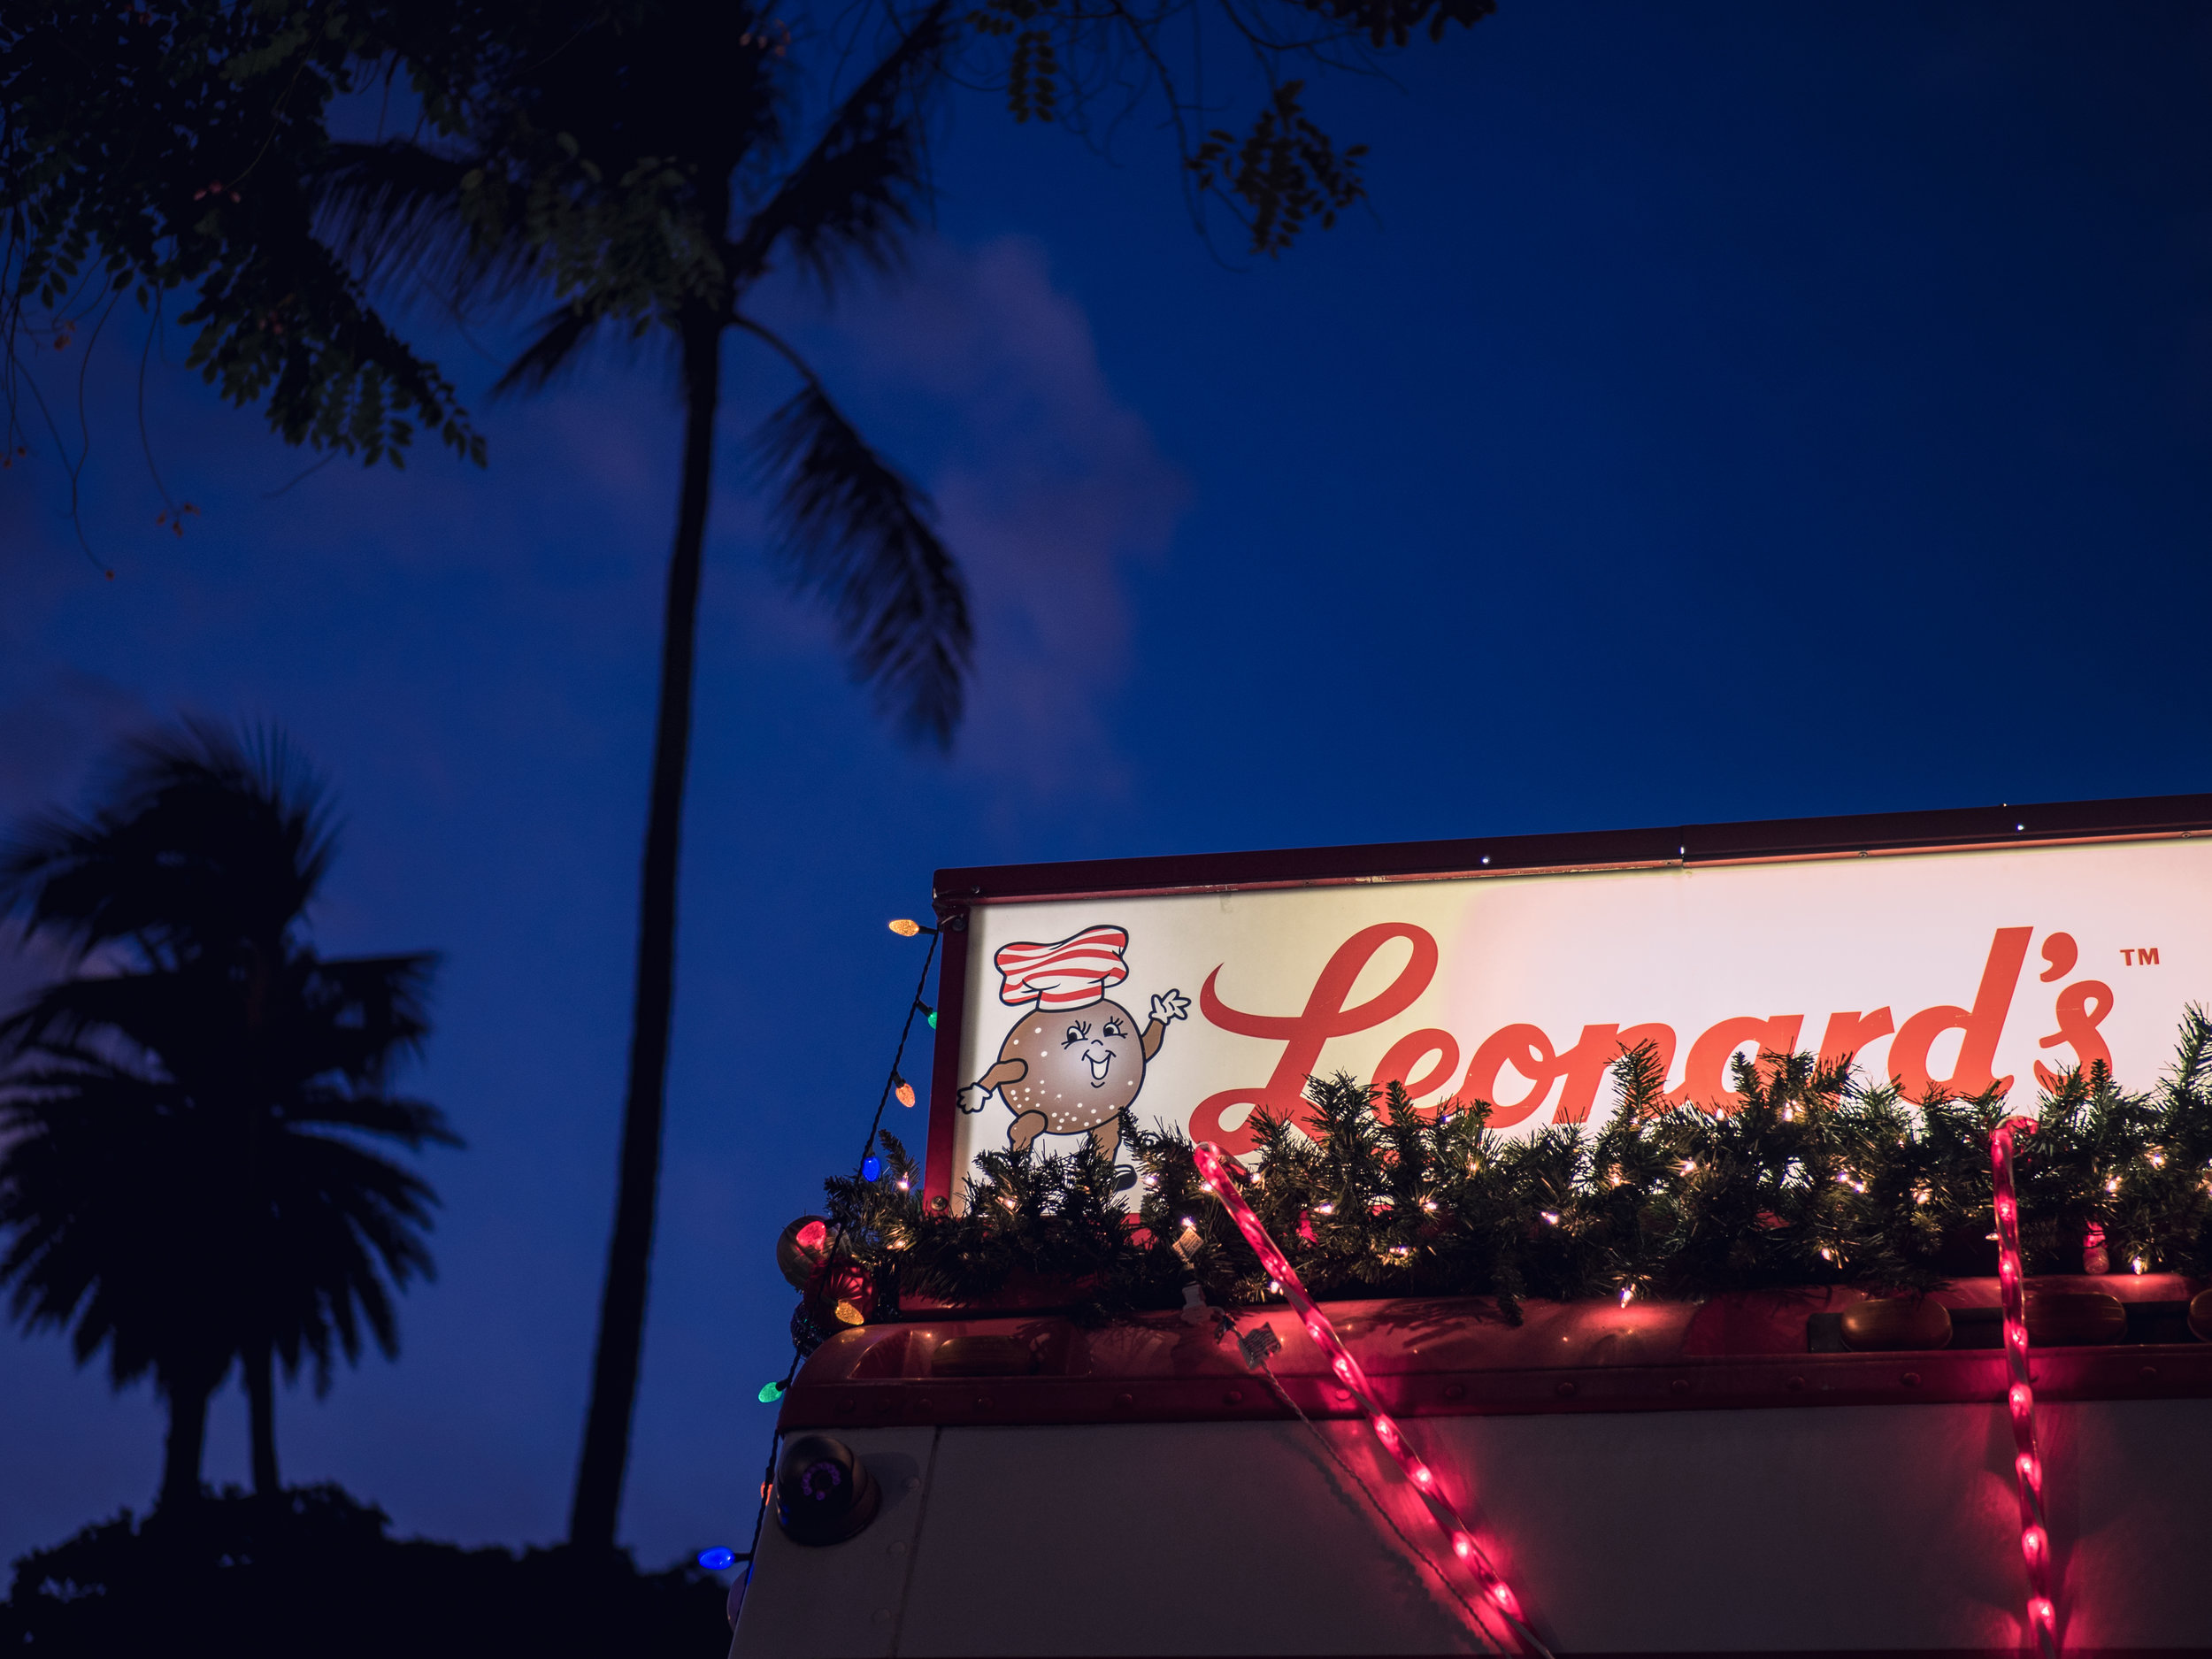 Musings by the Glass - Eggnog and Malasadas - Leonard's Malasadas Truck at Honolulu City Lights